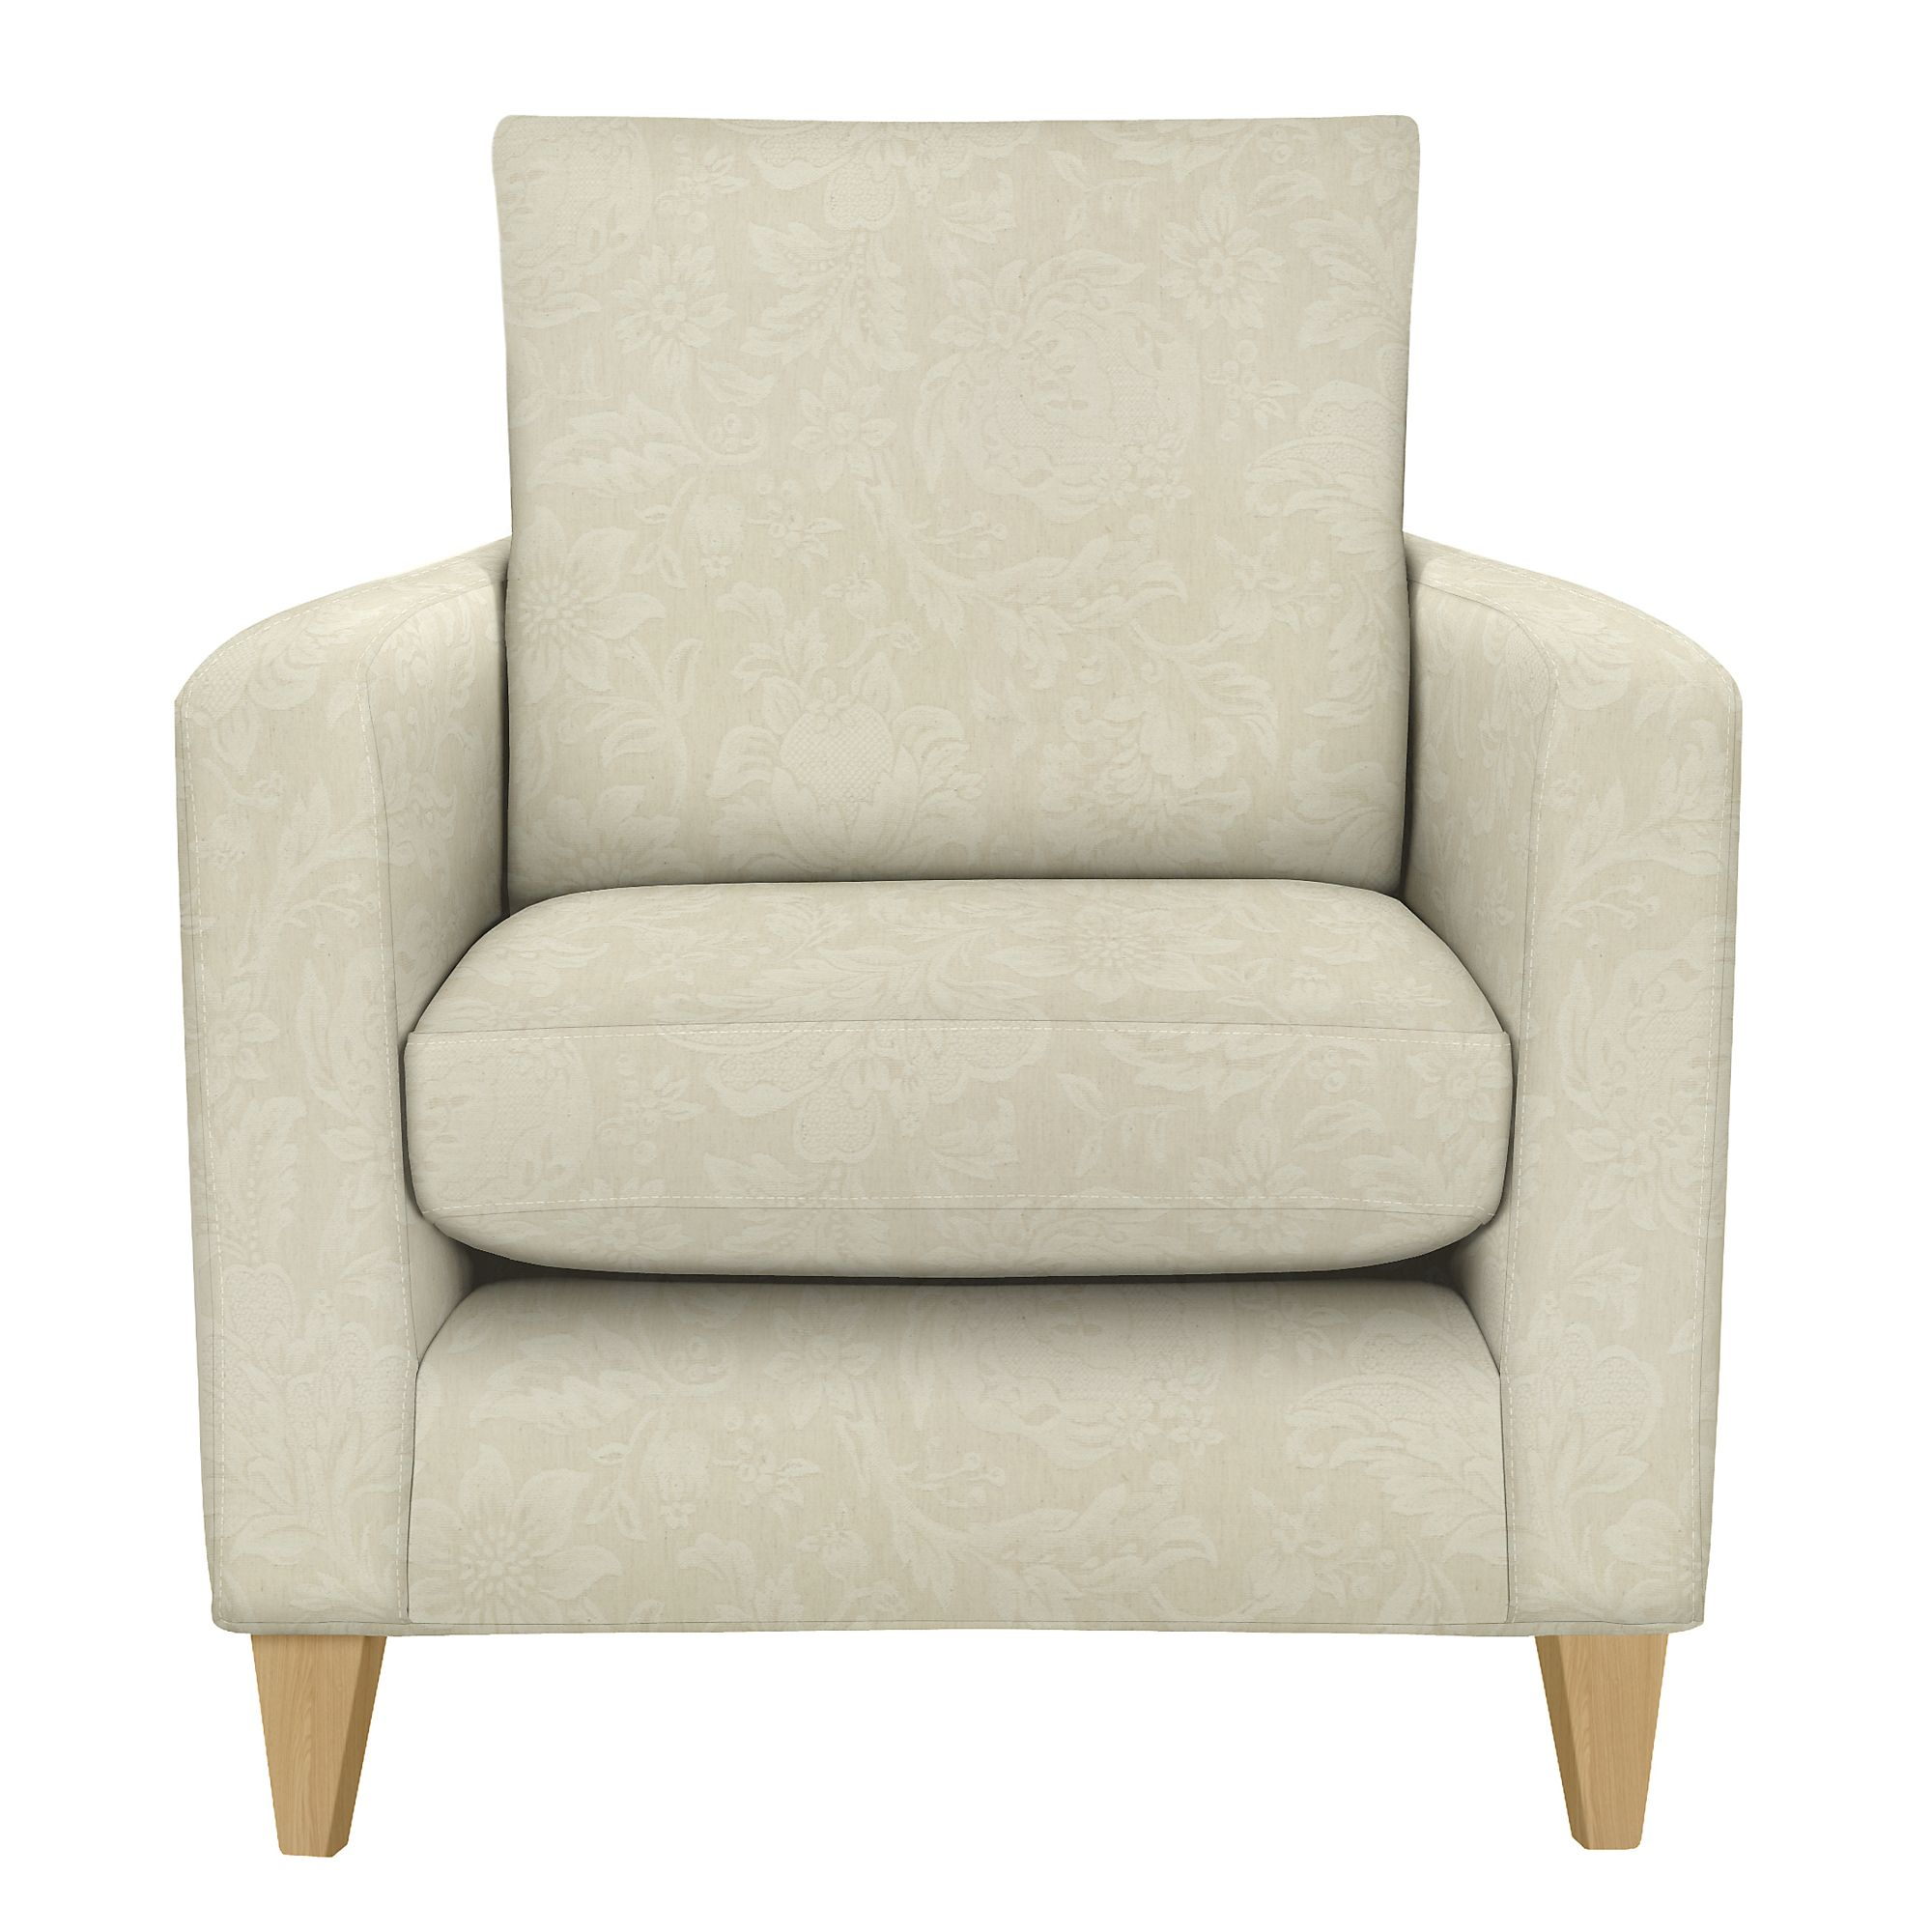 Light coloured fabric leather small snuggler sofas armchairs for Small fabric chair